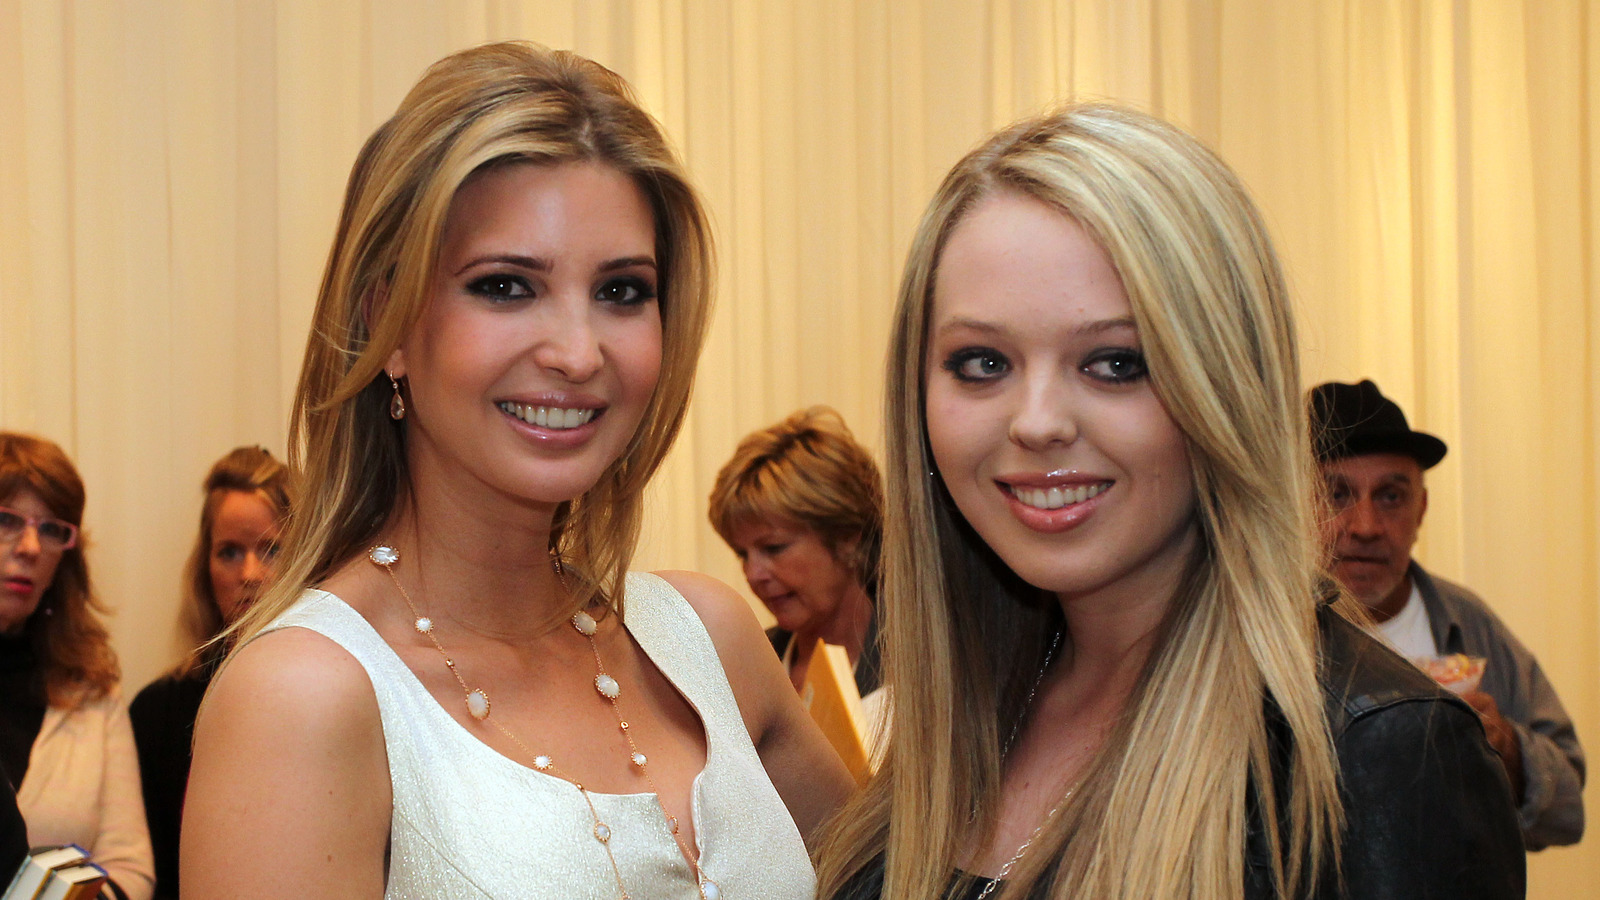 The Truth About Tiffany And Ivanka Trump's Relationship